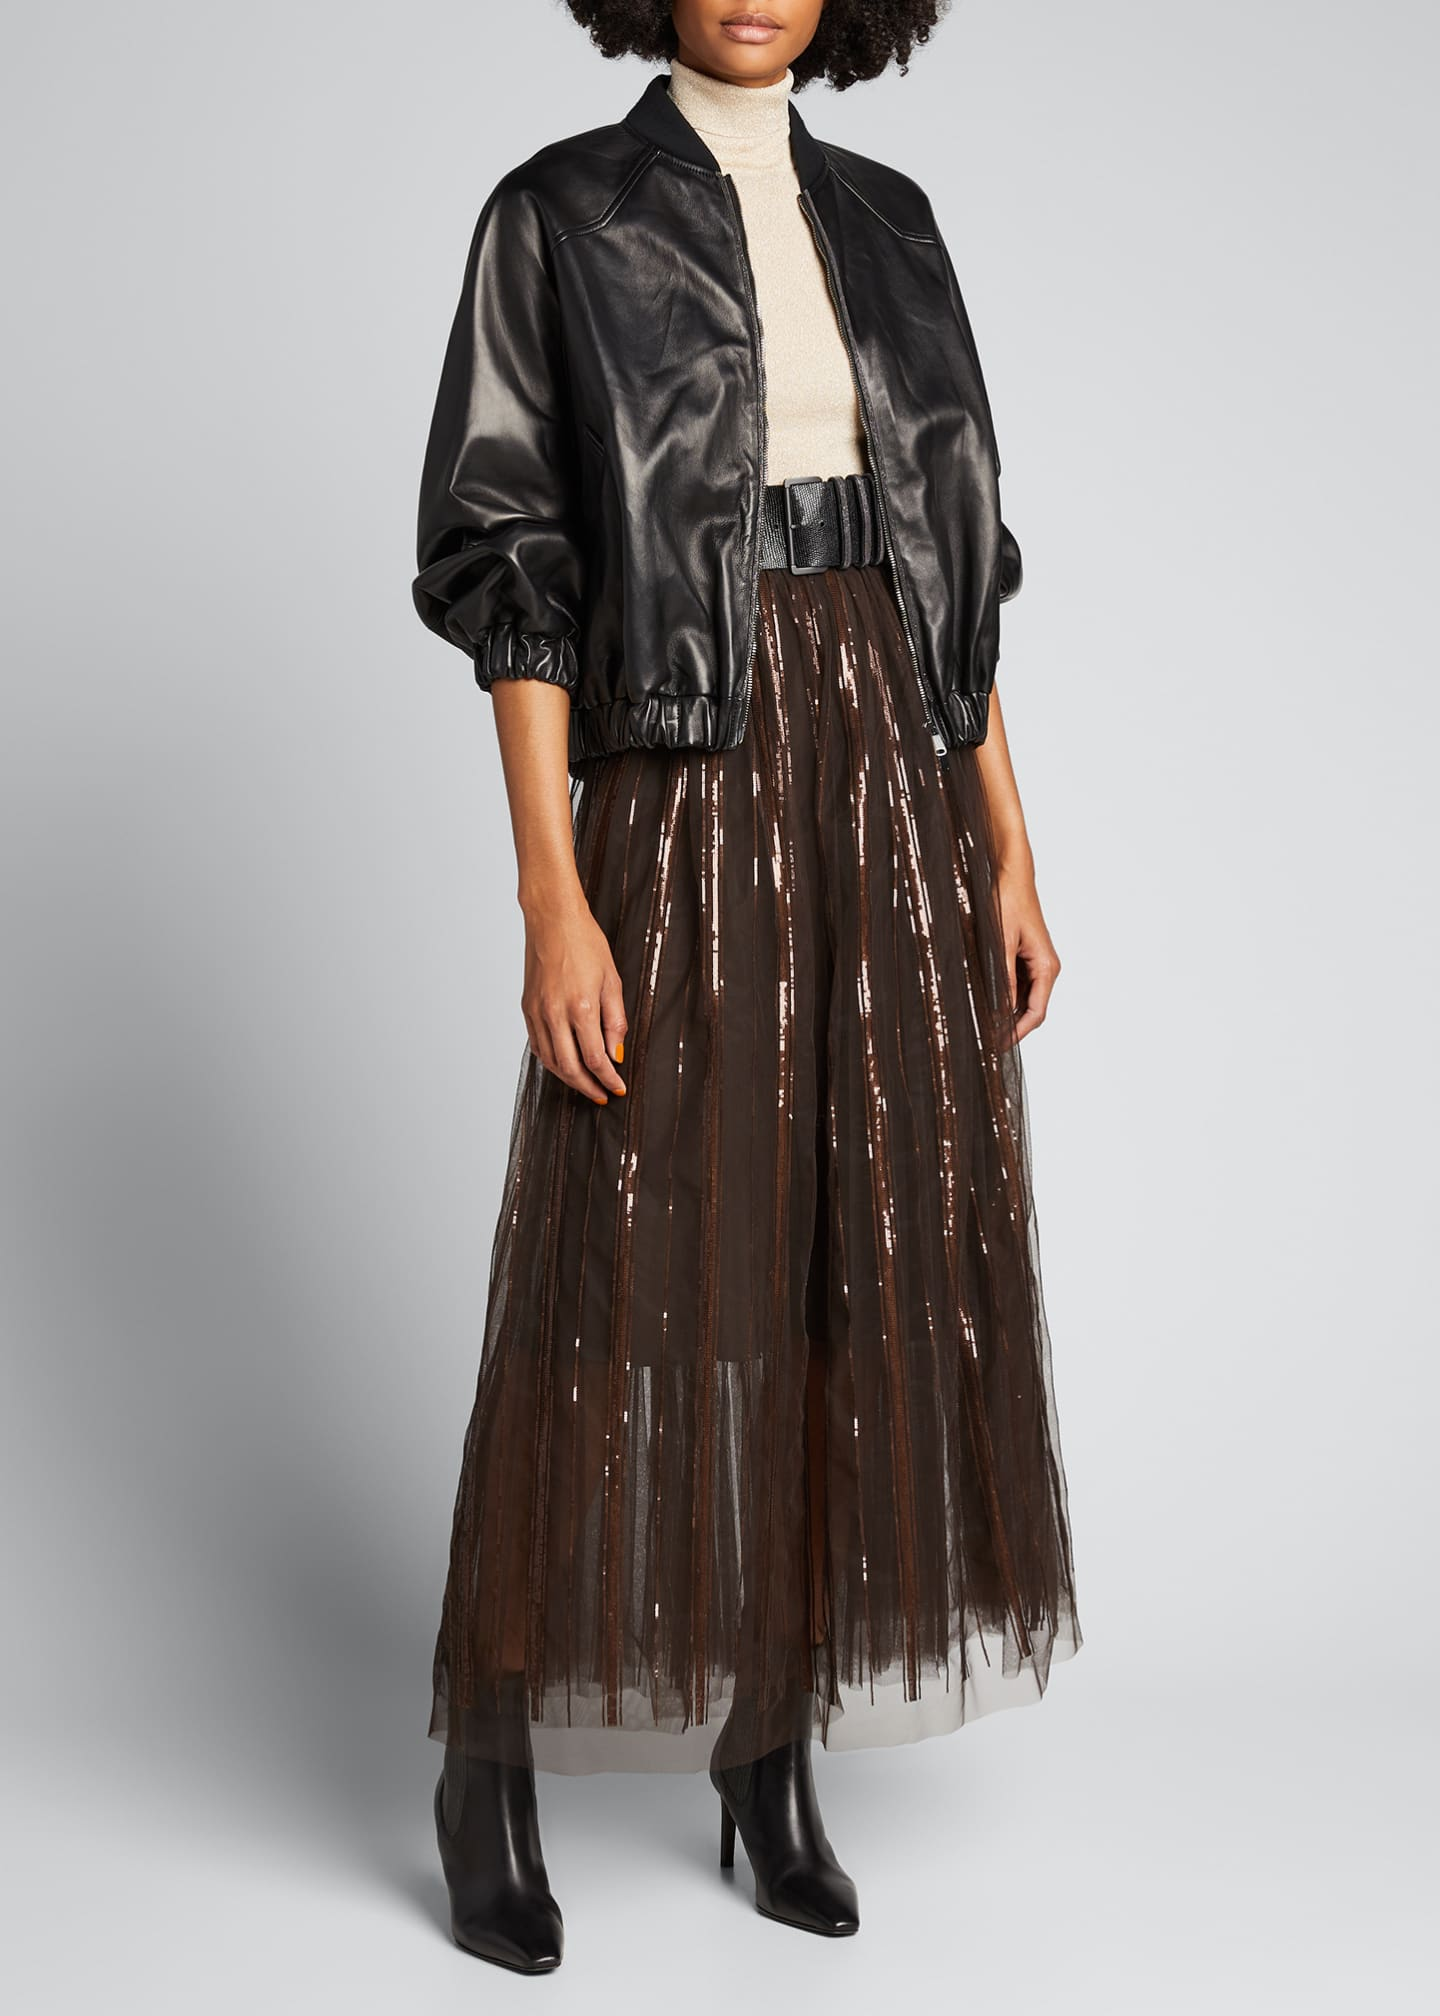 Image 1 of 5: Floral Embroidered Tulle Skirt with Leather Belt